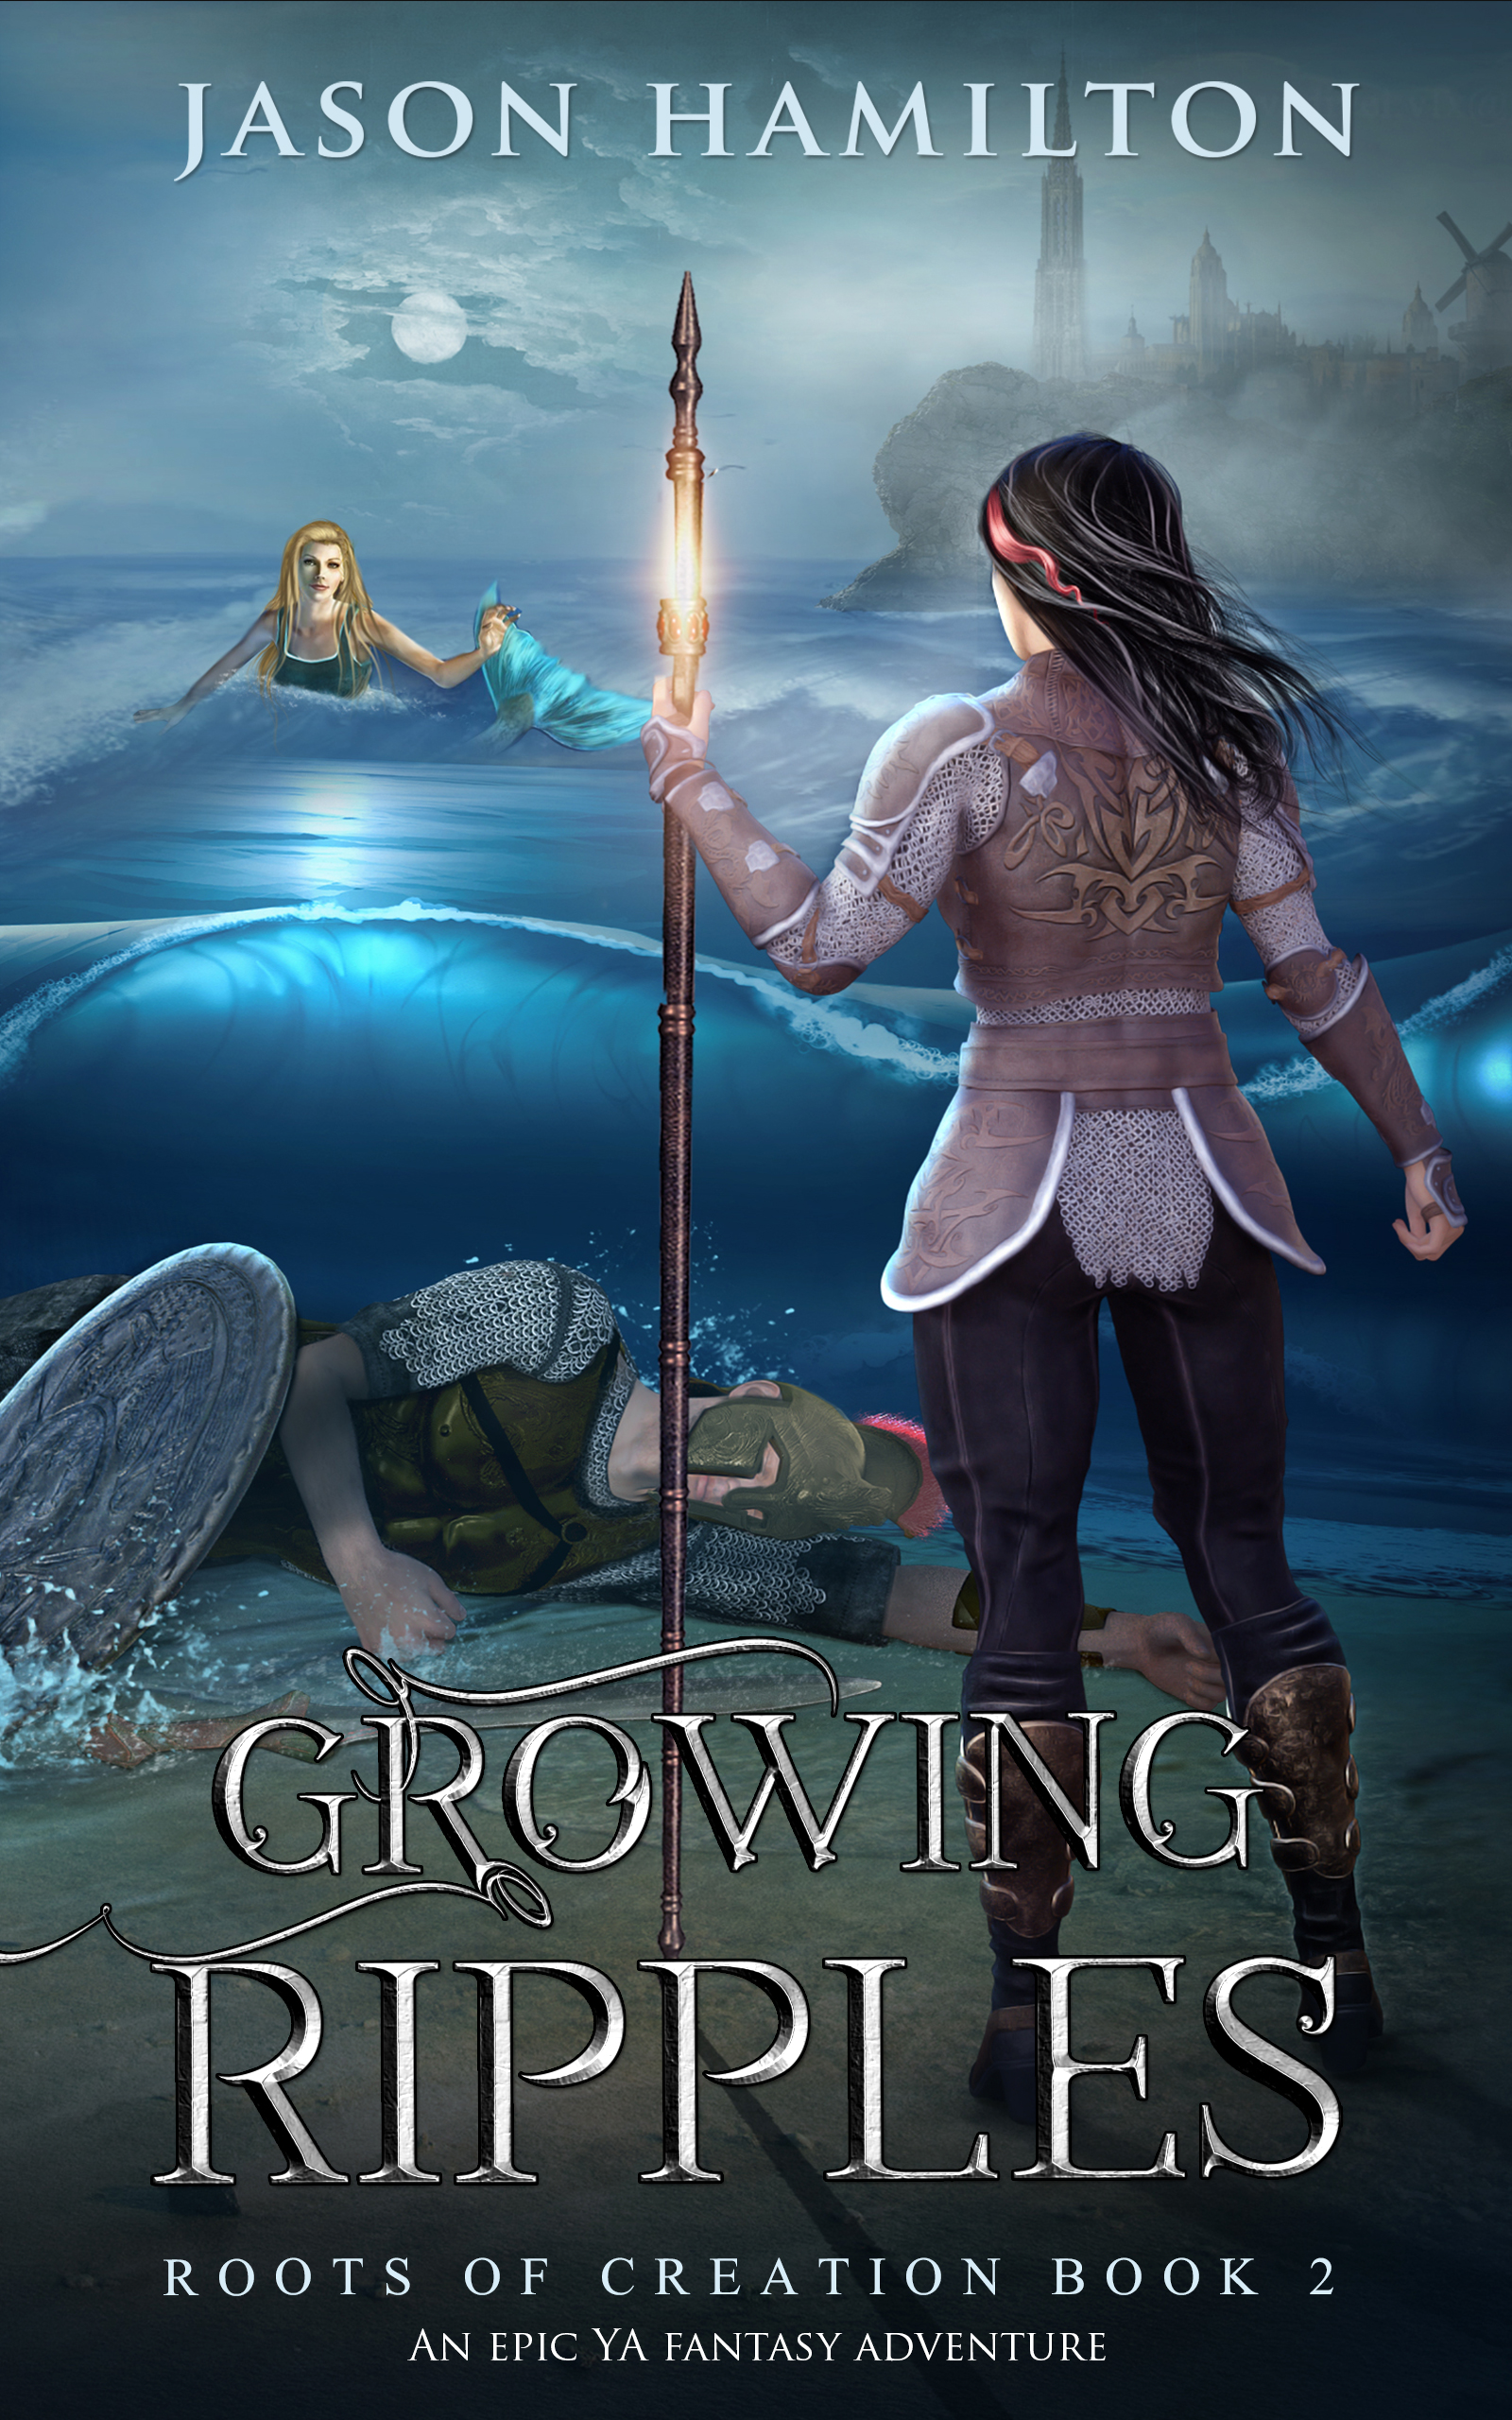 Growing Ripples book cover